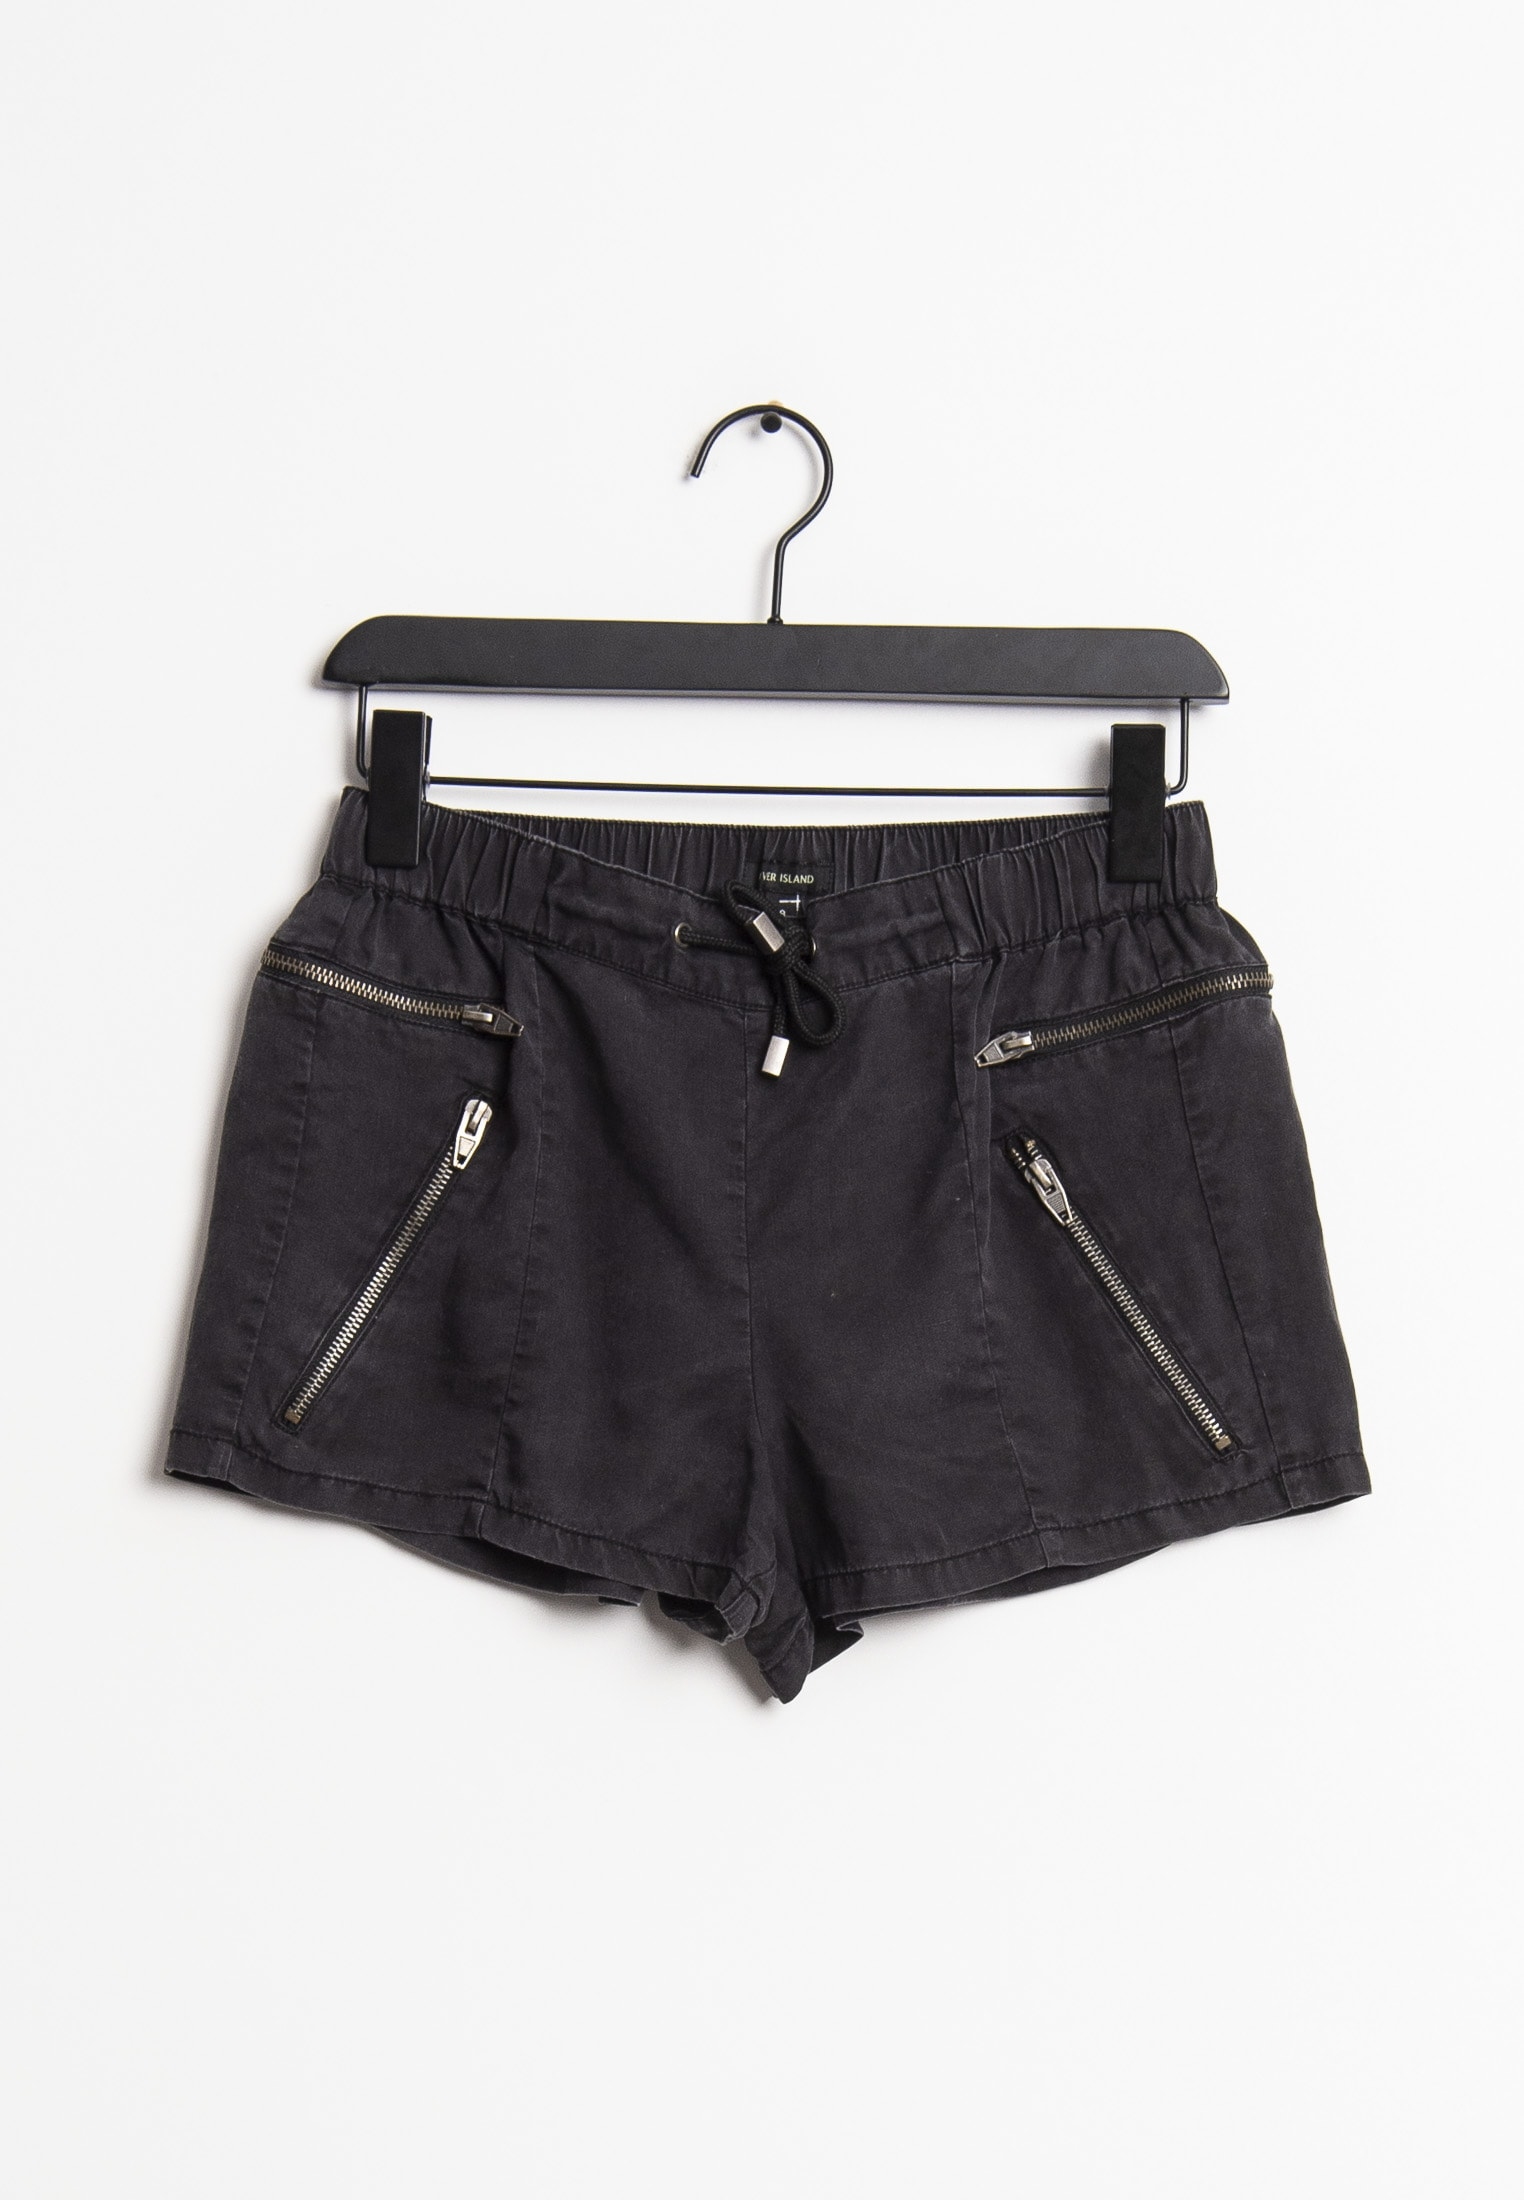 River Island shorts, sort, 36